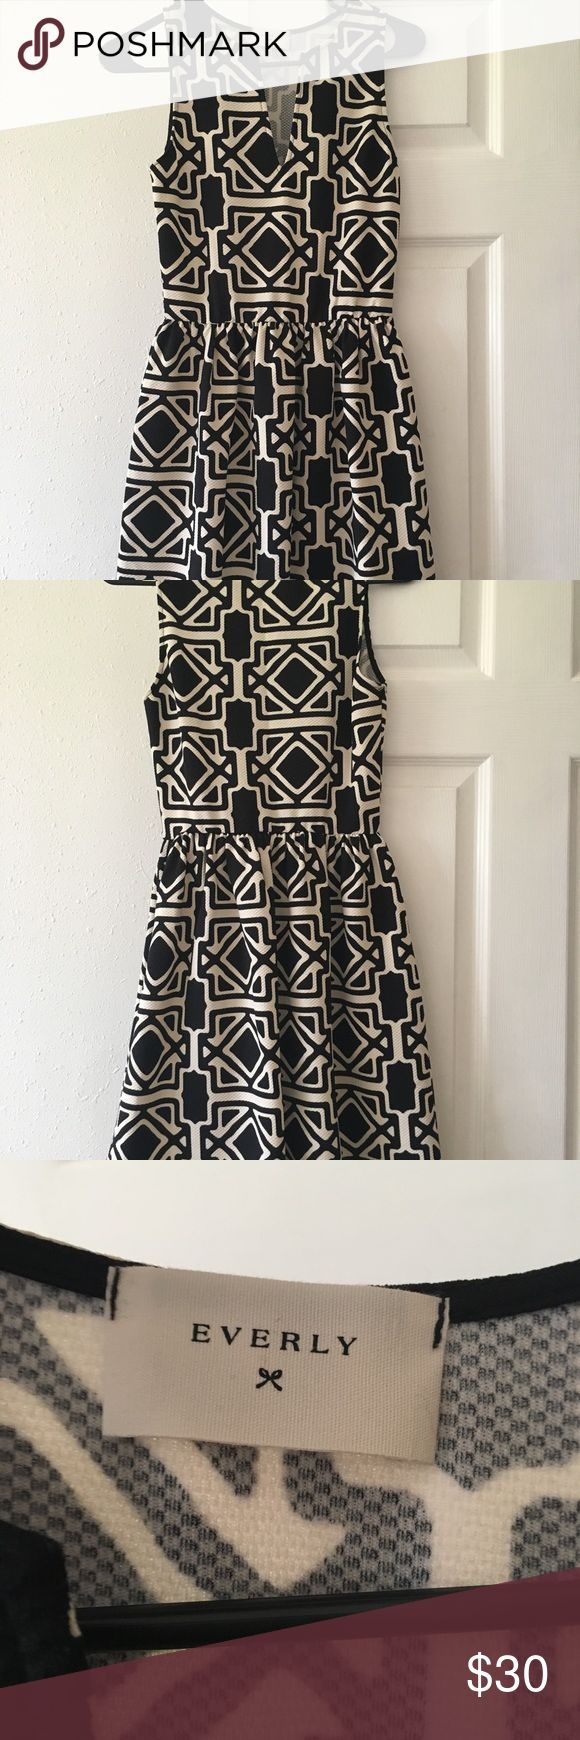 Black and White Boutique Dress I love this dress, just don't have anywhere to wear it so it needs a new home. Worn only twice! Black and white geometric design, looks great with a belt or sash around the waist. Boutique brand so no size listed, but would fit an XS or S. reasonable offers welcome! ☺️ Everly Dresses